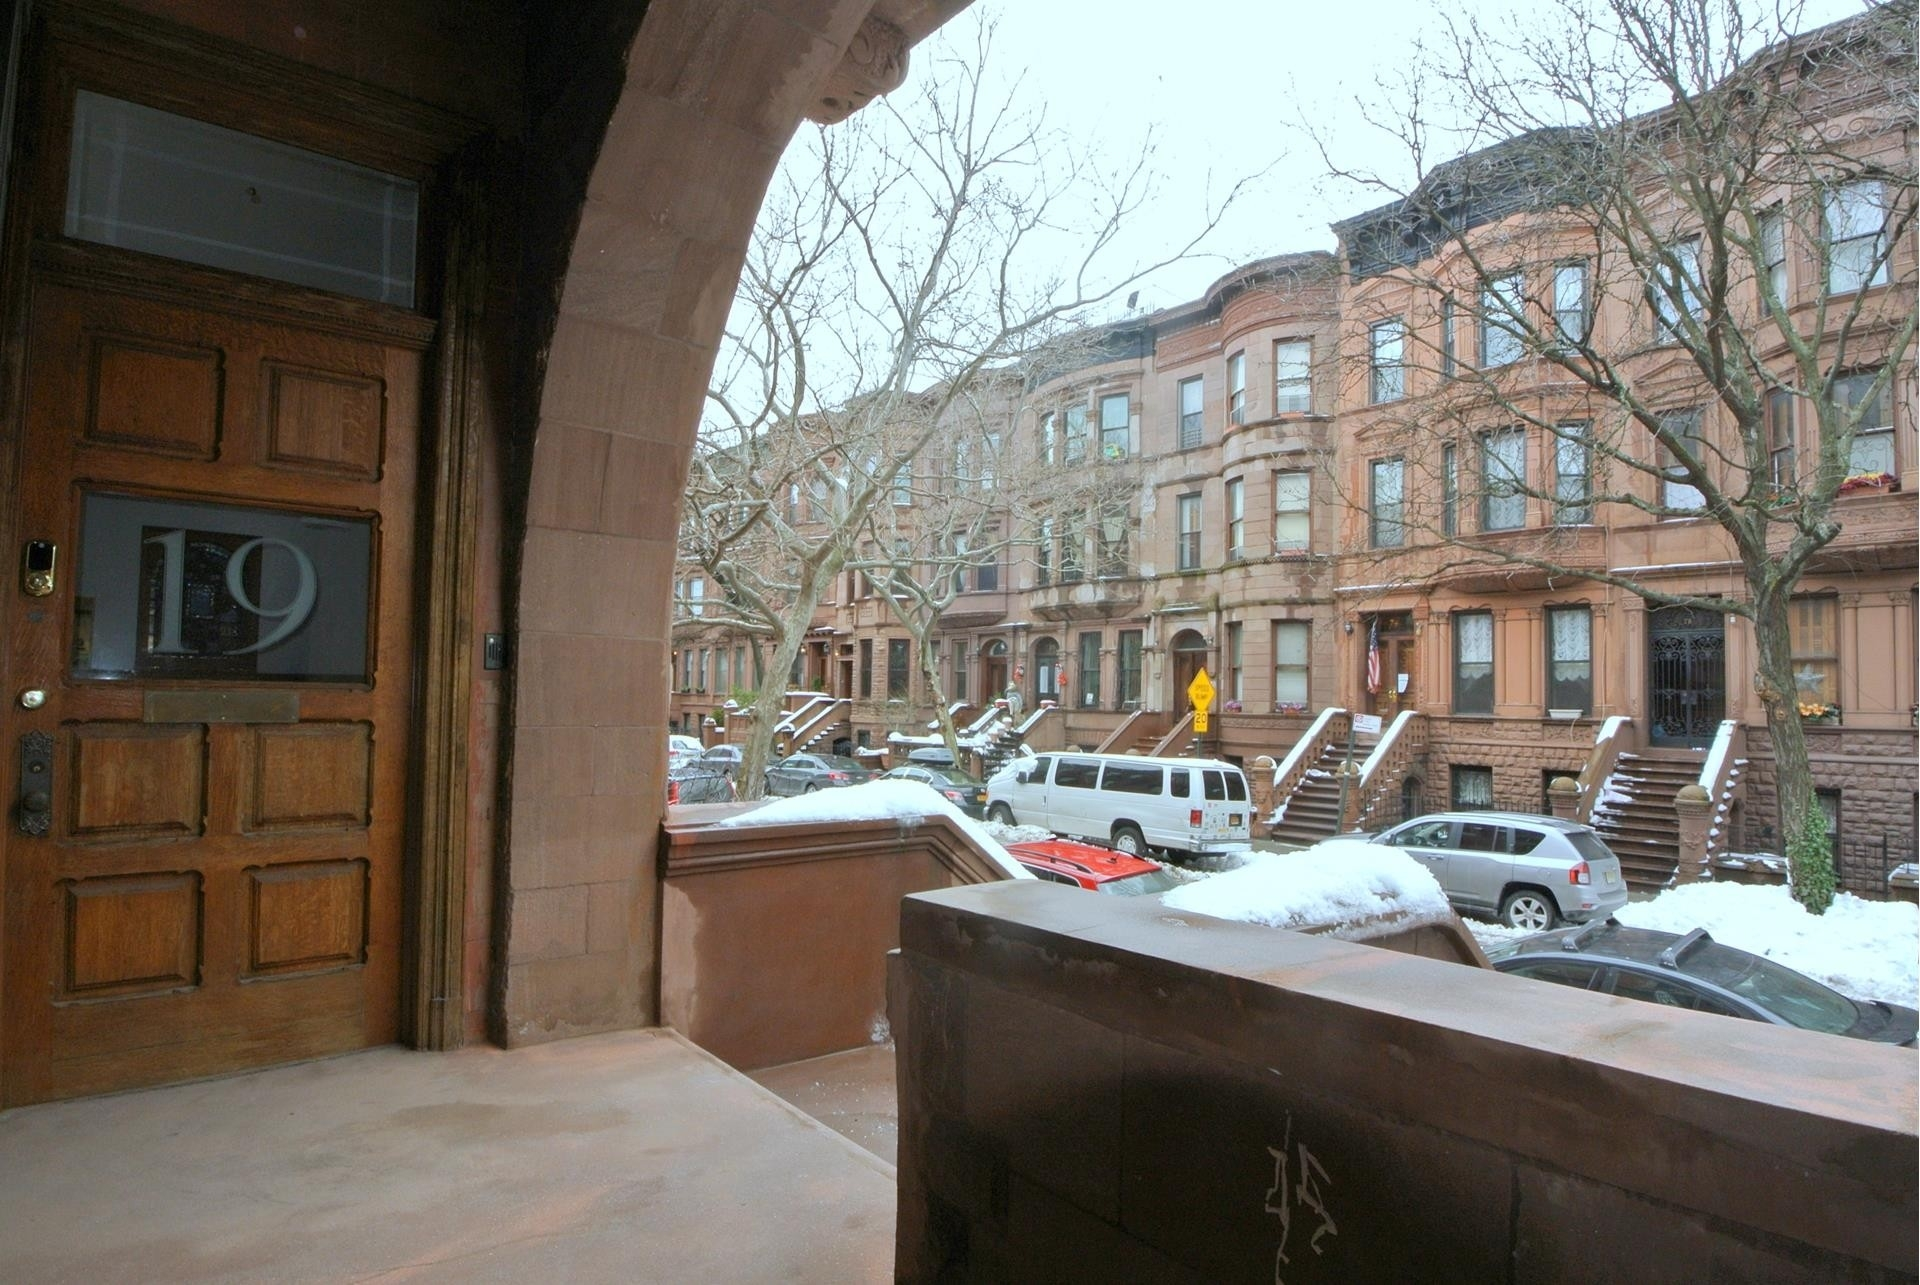 13. building at 19 West 120th St, Central Harlem, New York, NY